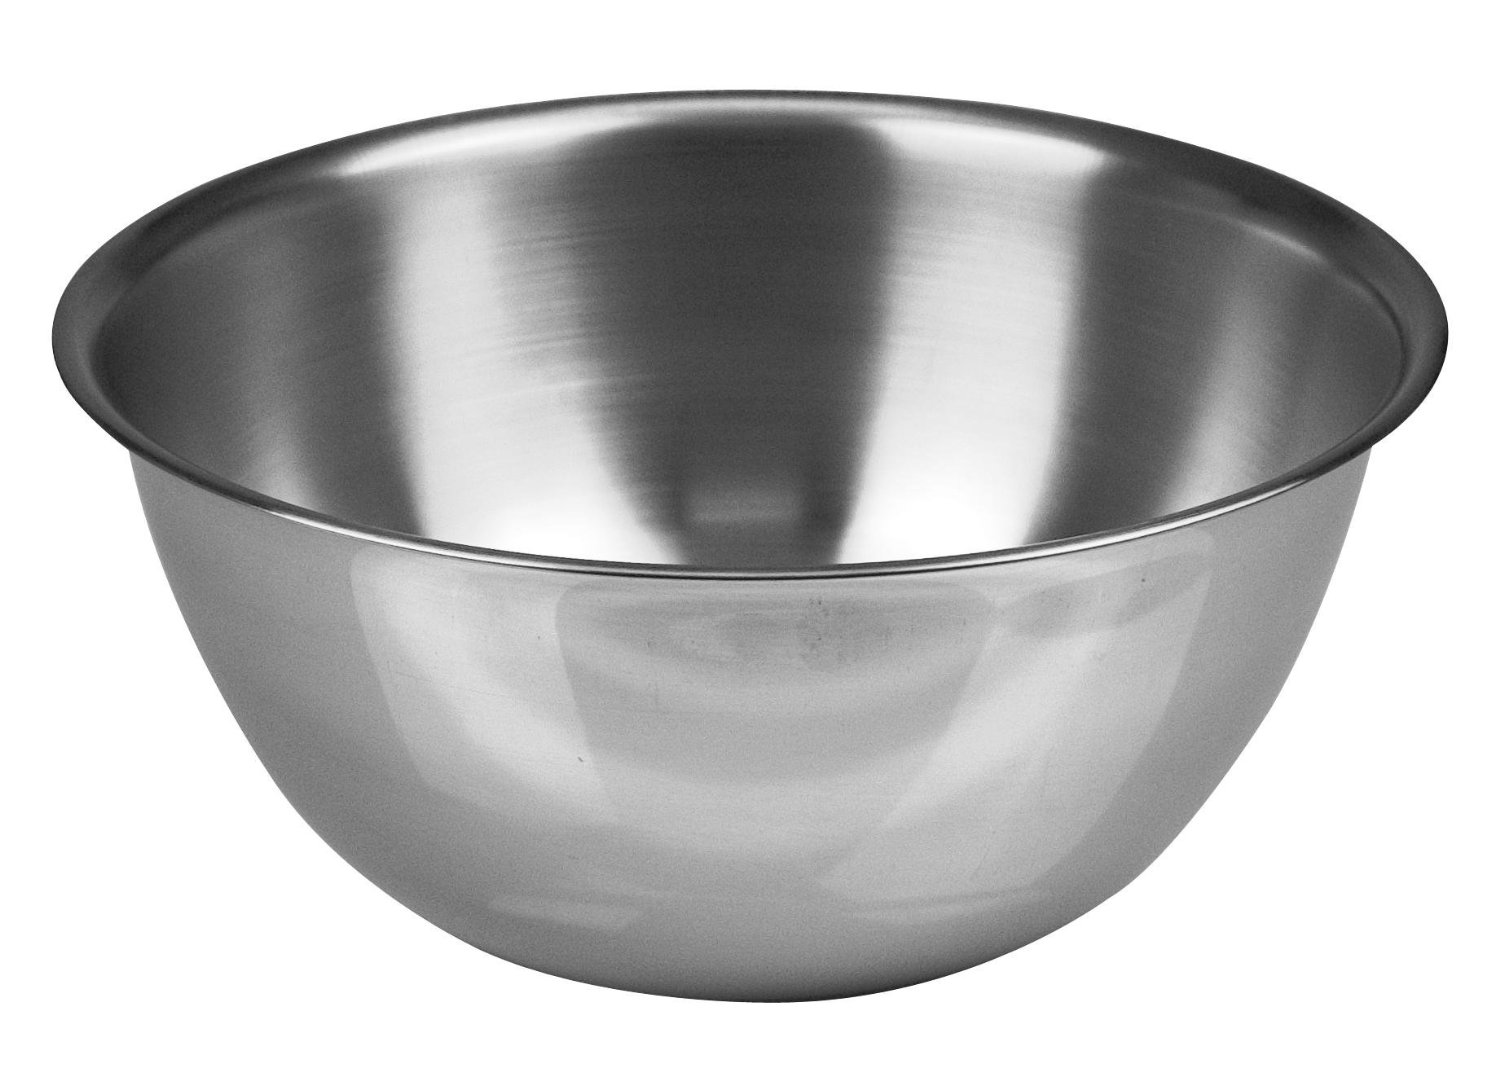 Fox Run Mixing Bowl 2 75 Quart Stainless Steel Flat Bottom